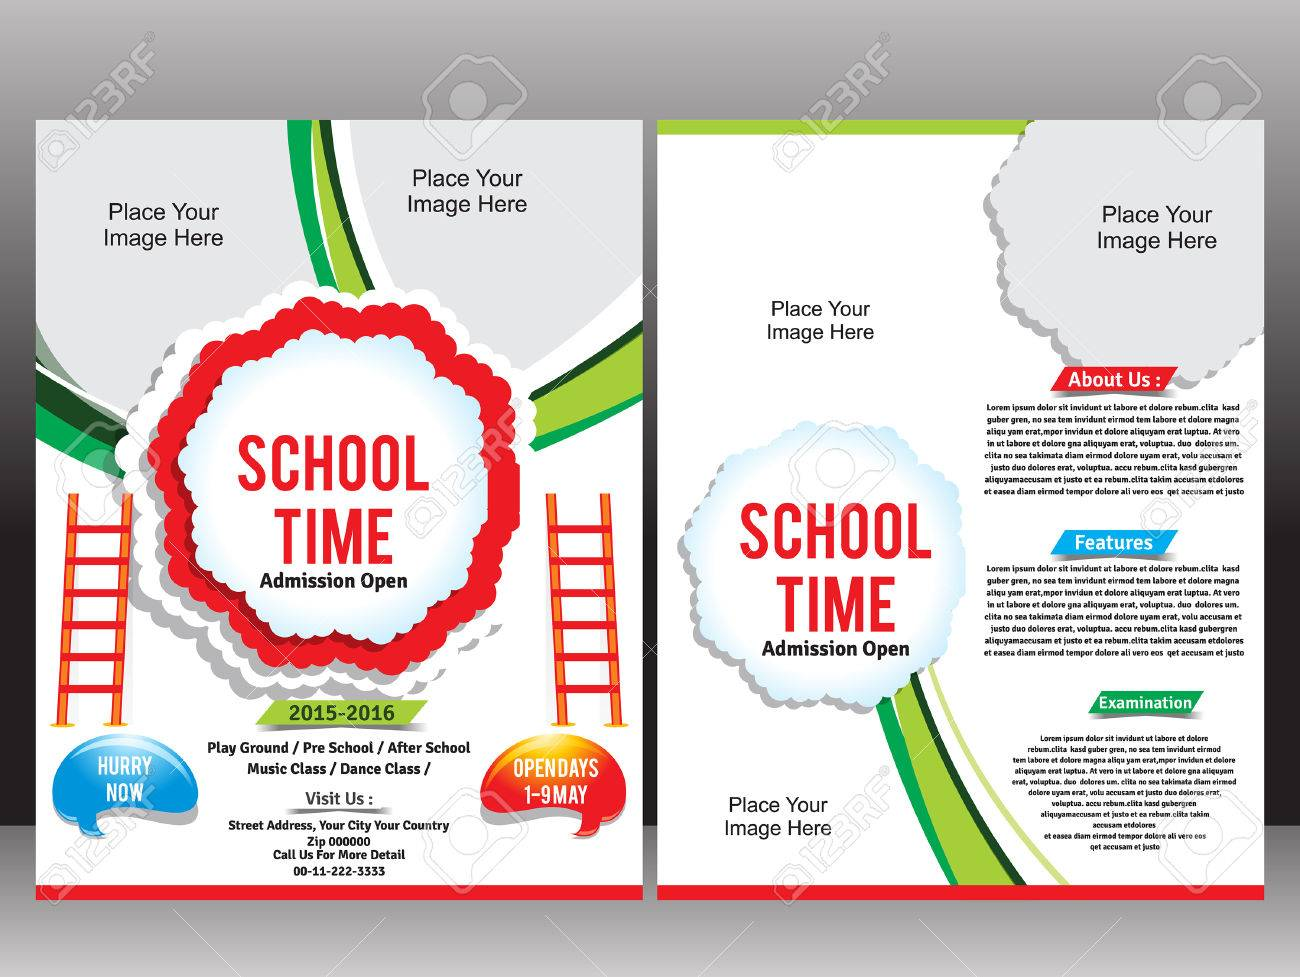 School Admission Flyer Template vector illustration